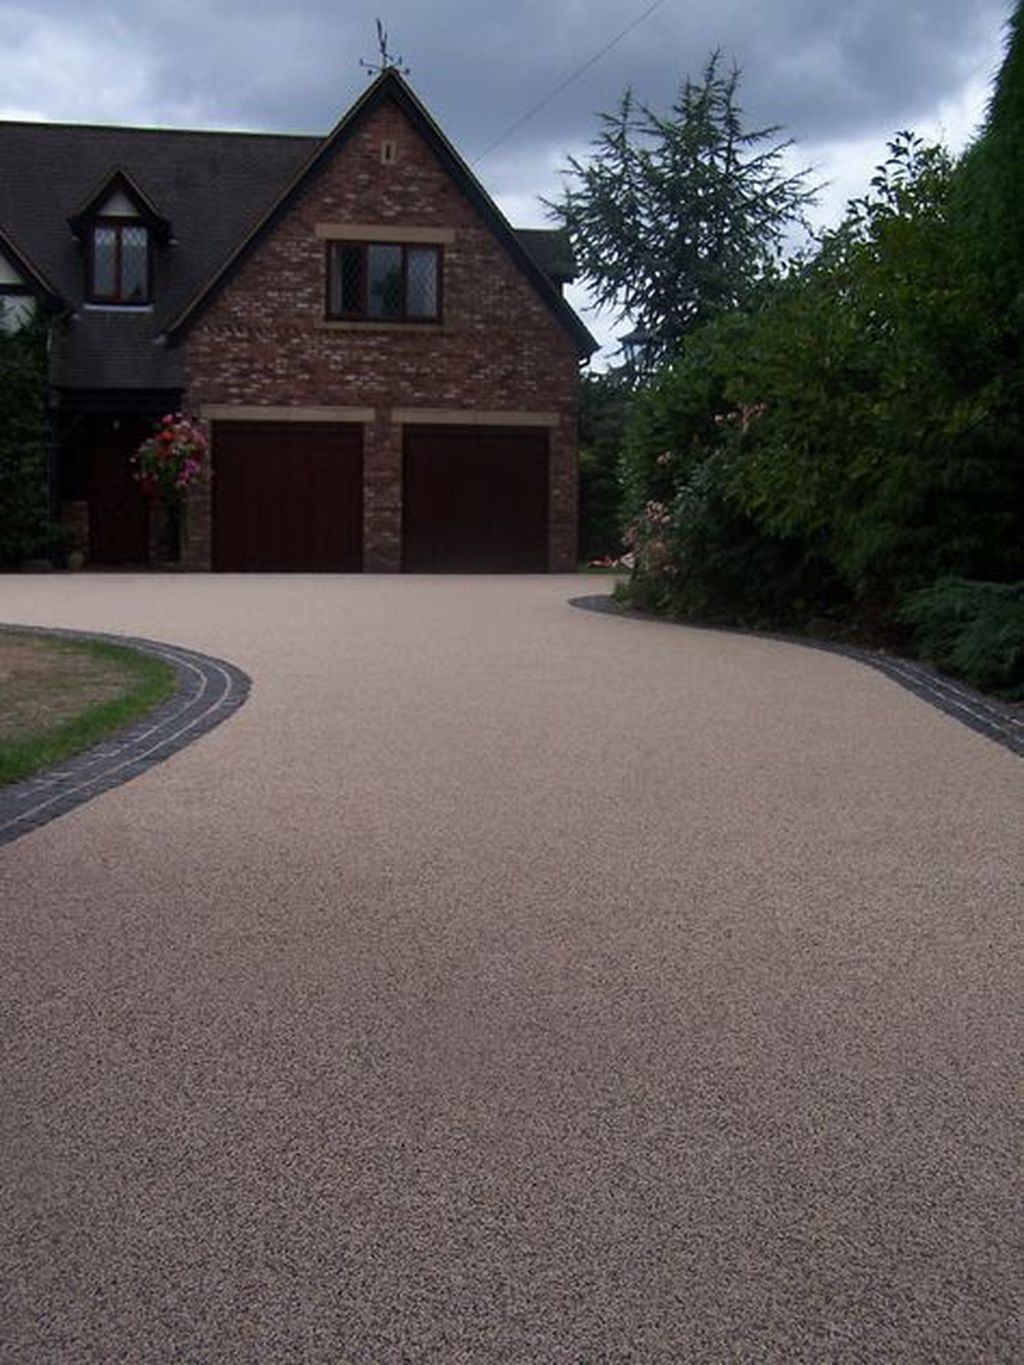 Fabulous Driveway Landscaping Design Ideas For Your Home To Try Asap 03